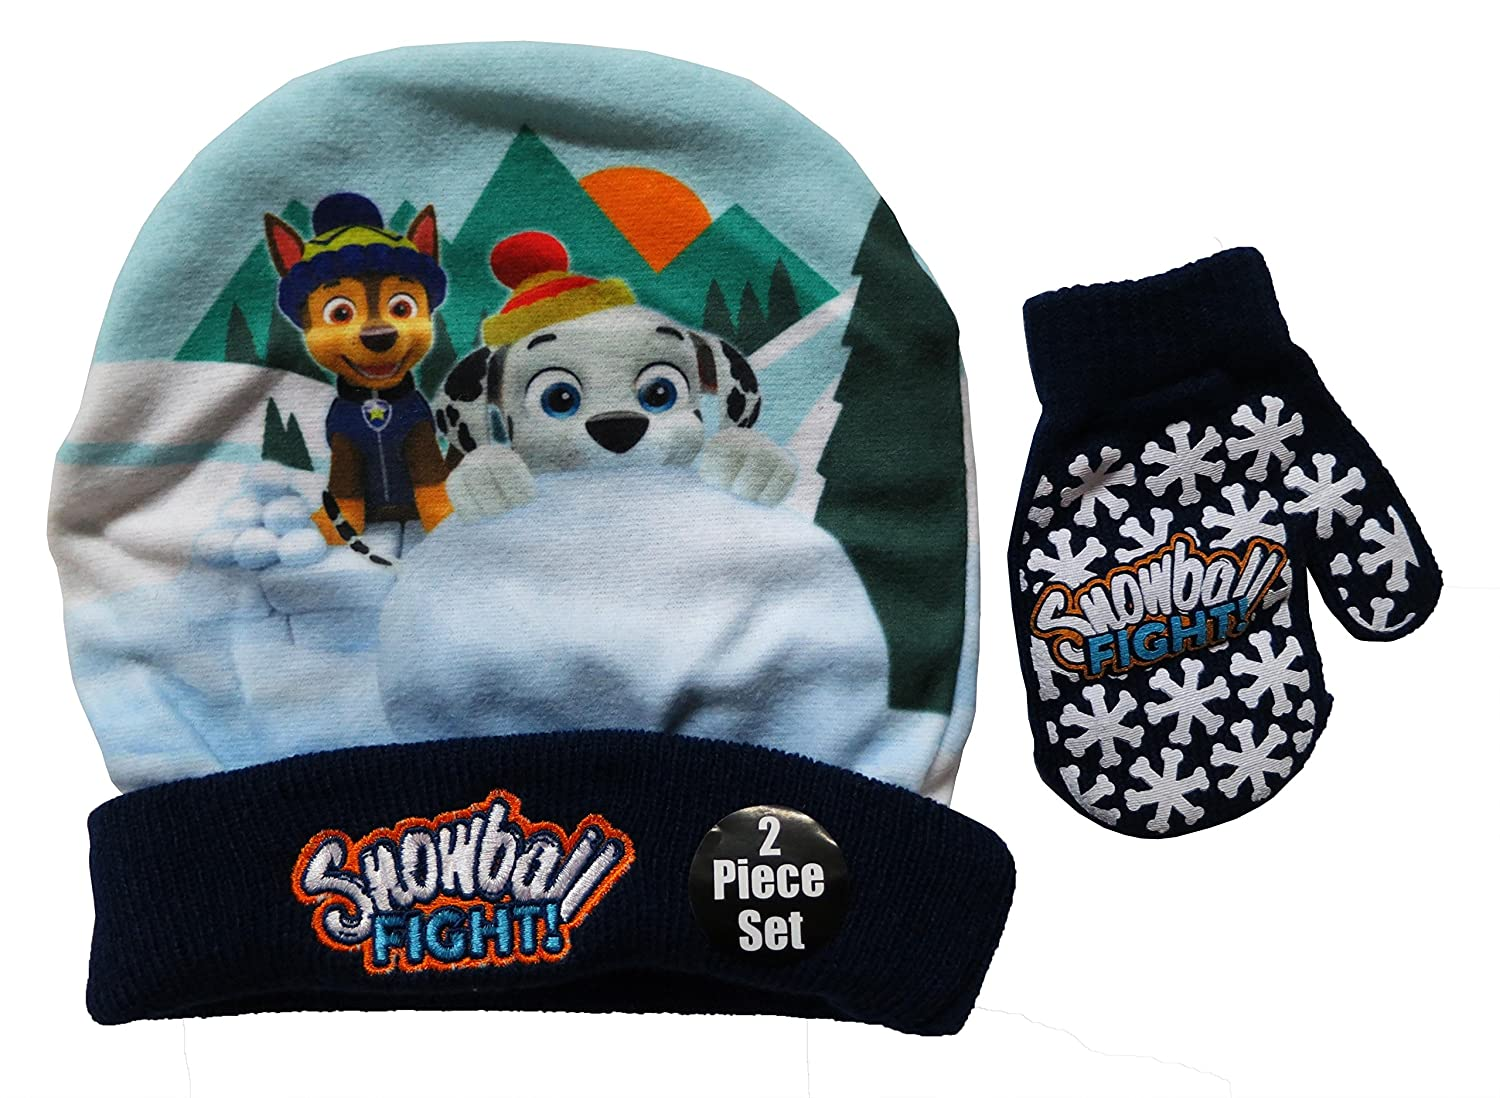 Nickelodeon Paw Patrol Marshell and Chase Hat and Mittens Set - Size Toddler [4013]